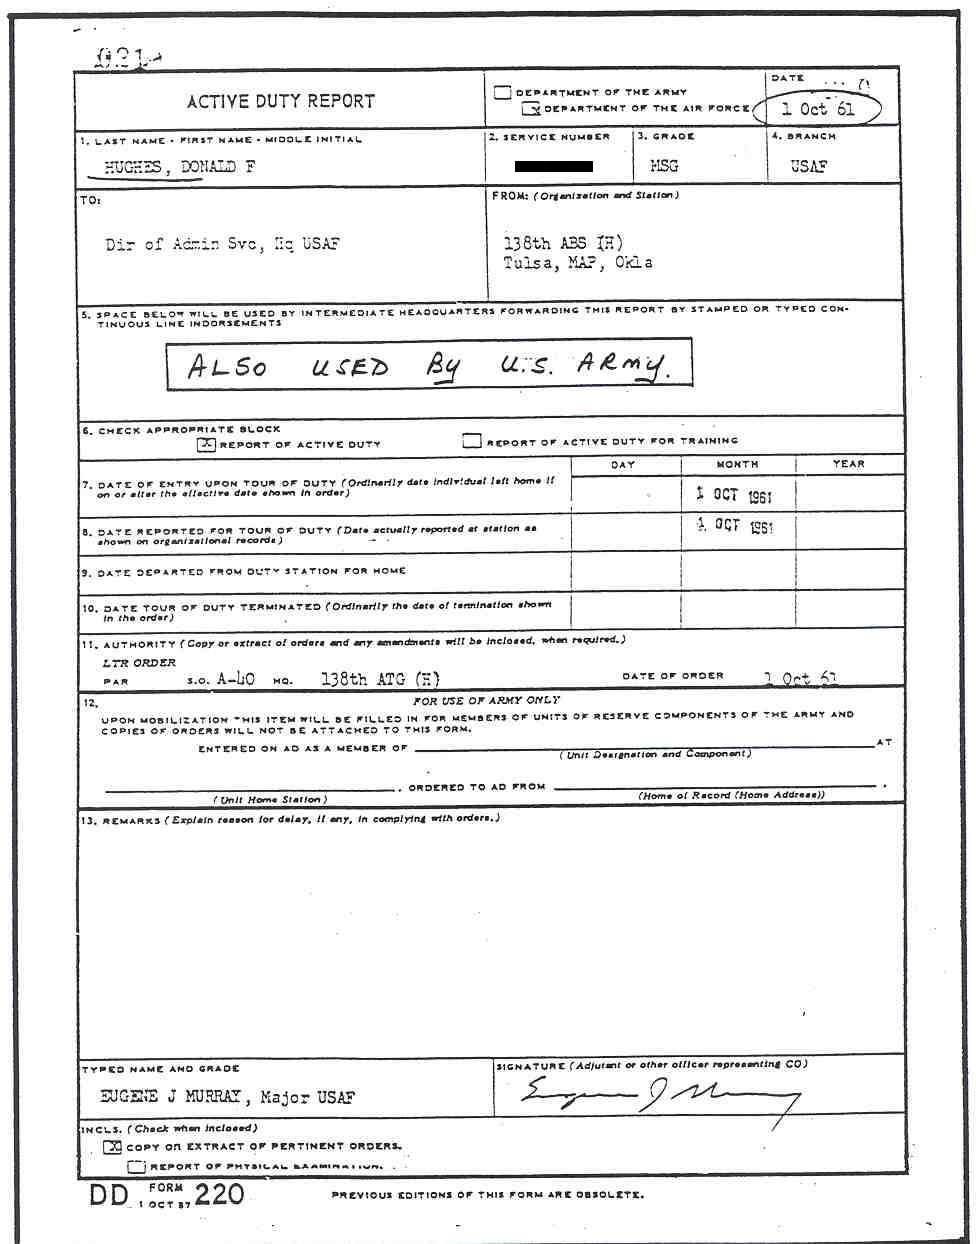 DD Form 220, Active Duty Report